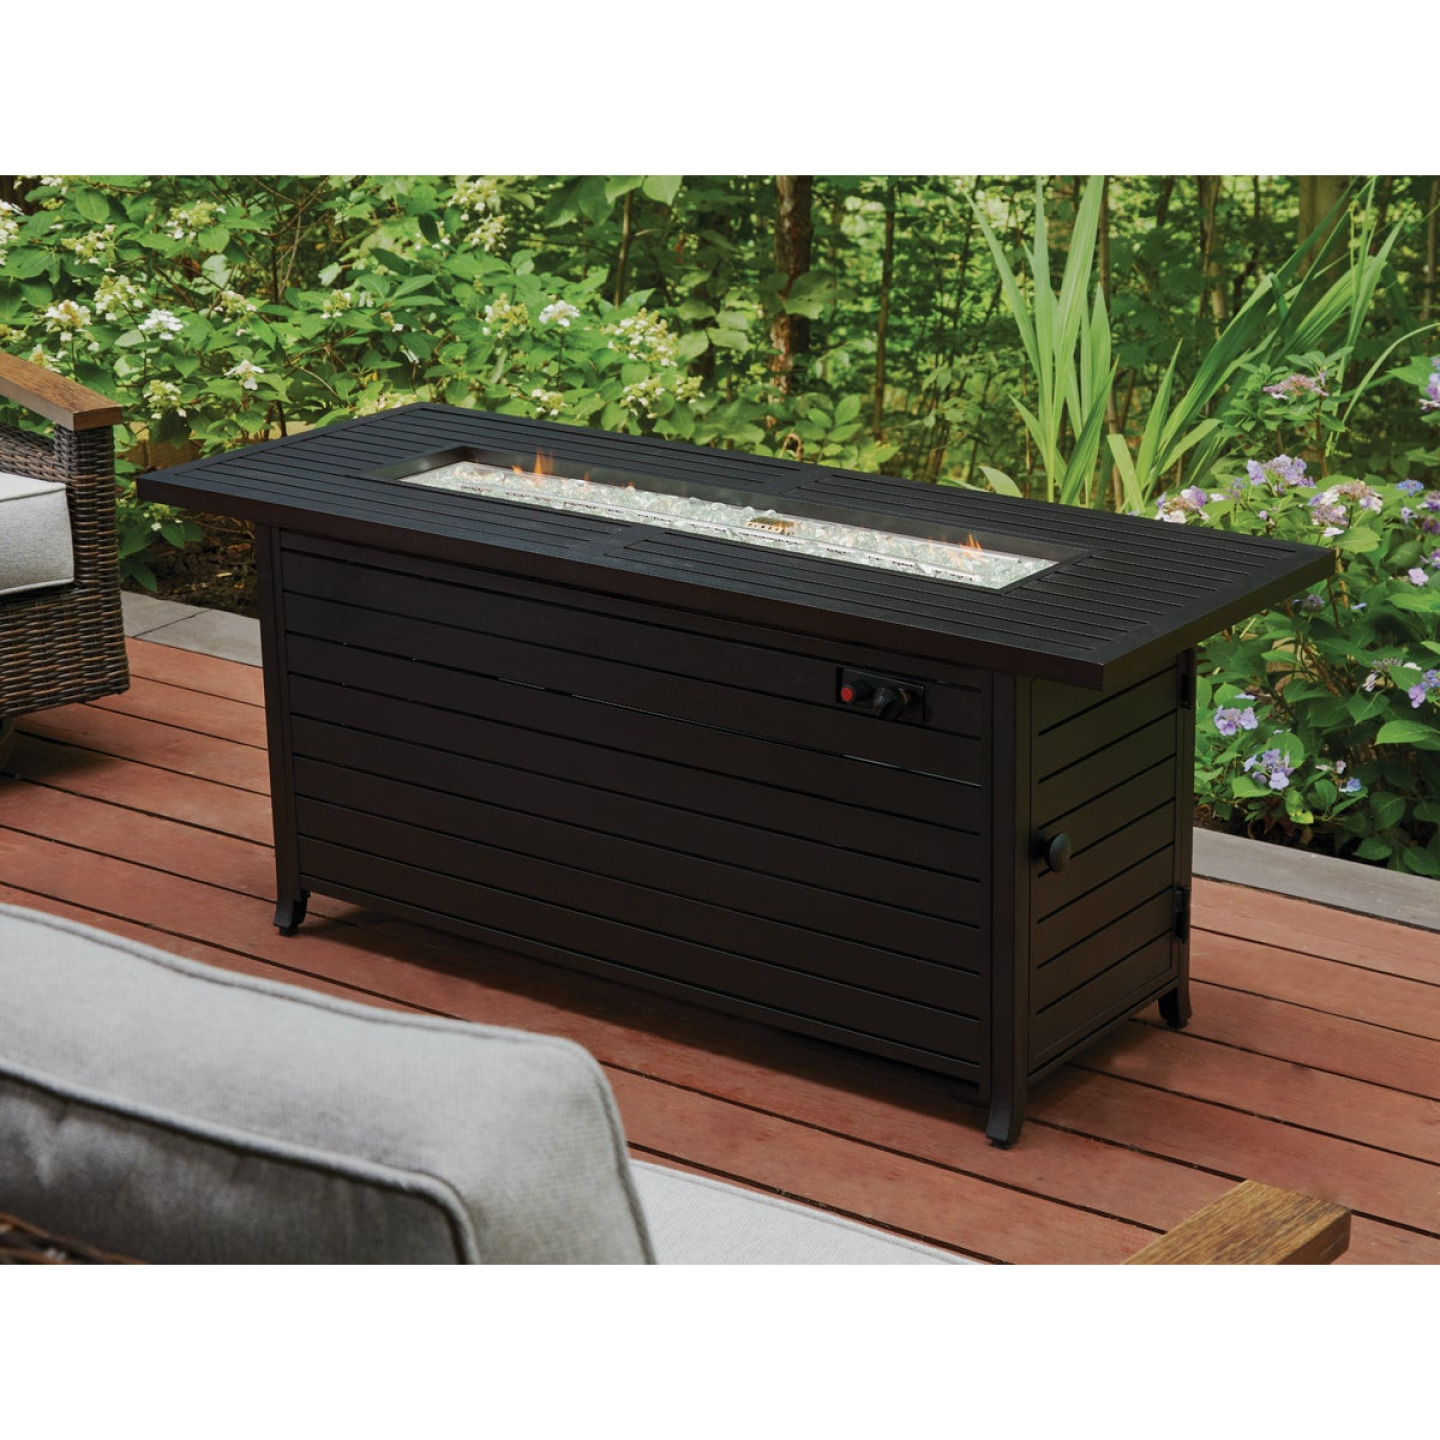 Outdoor Expressions 56 In. x 21 In. Rectangular Propane Fire Pit Table Image 3